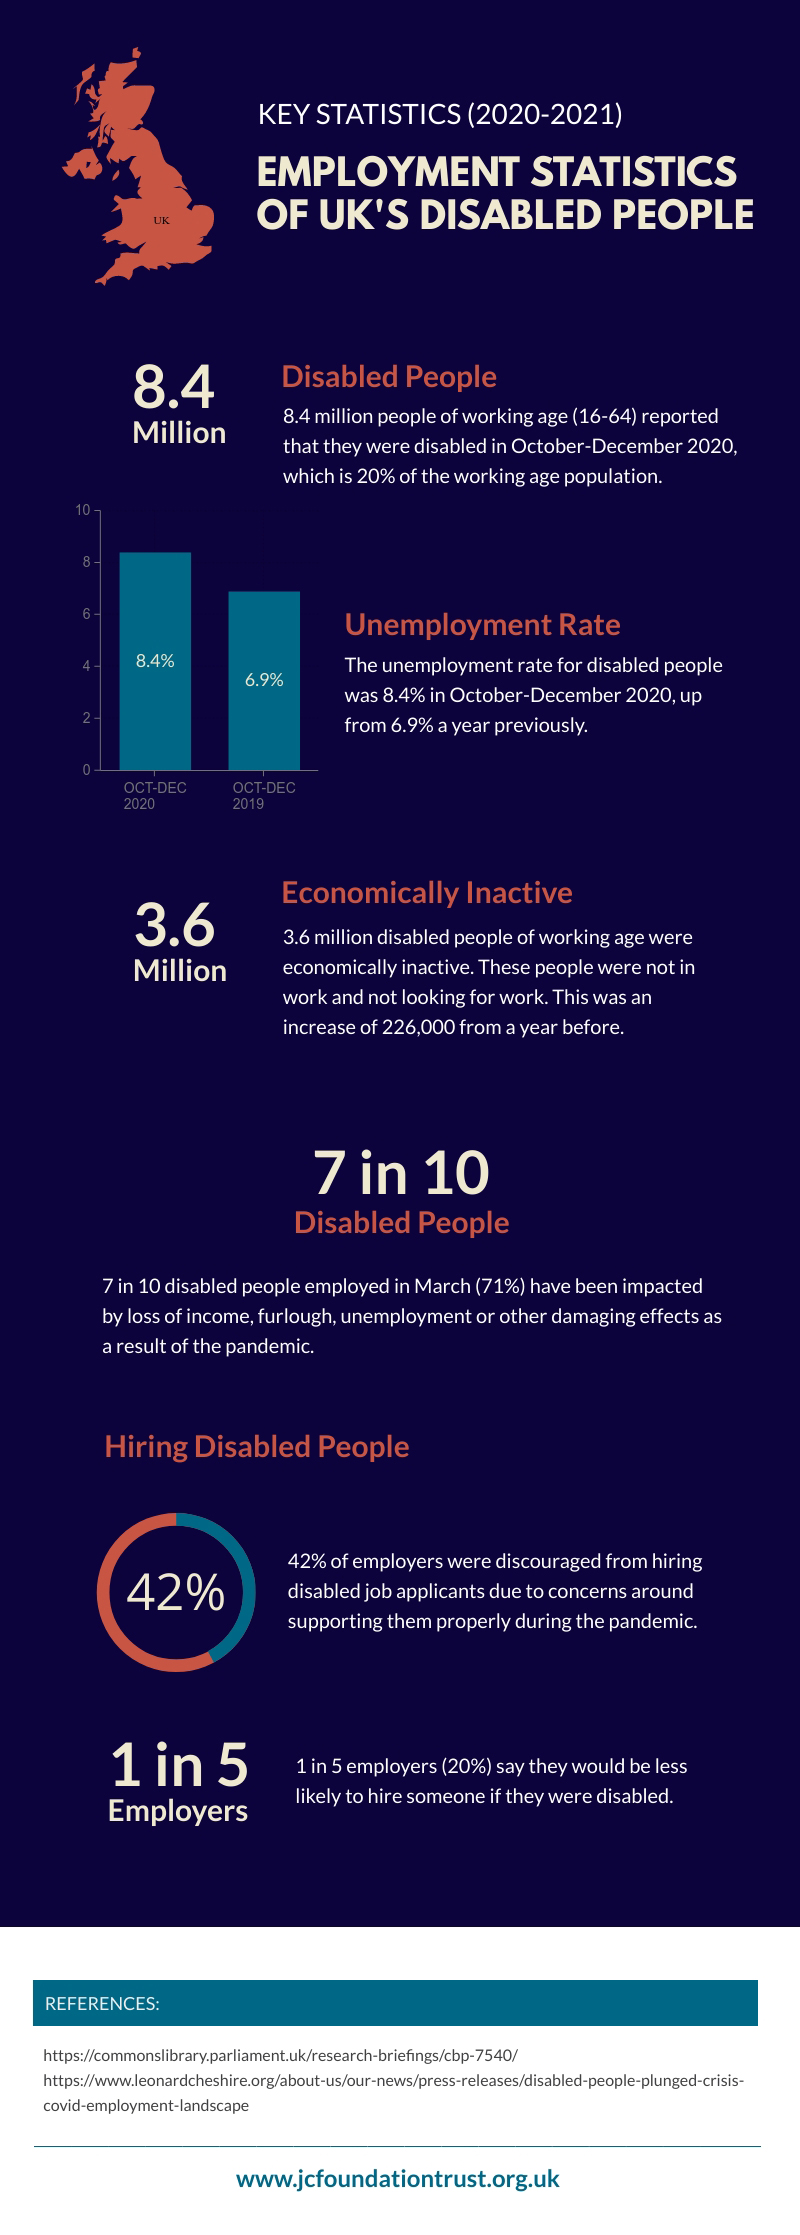 Employment Statistics of UK's Disabled People infographic